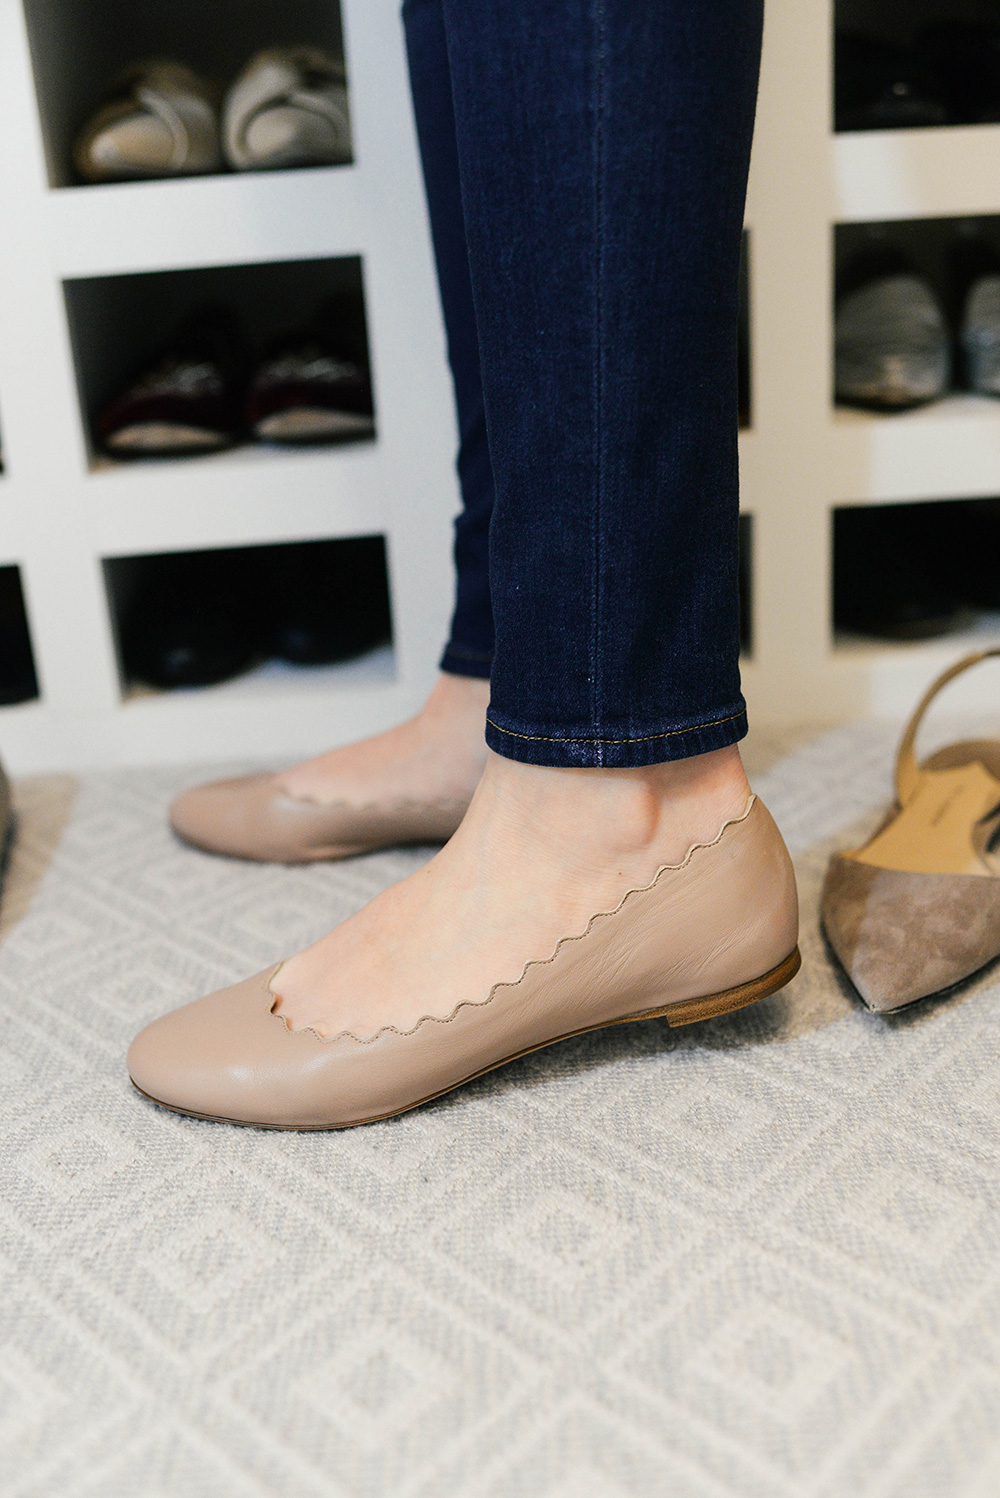 70e5e5969 Chloe Leather Scalloped Ballet Flats | Style Scribe